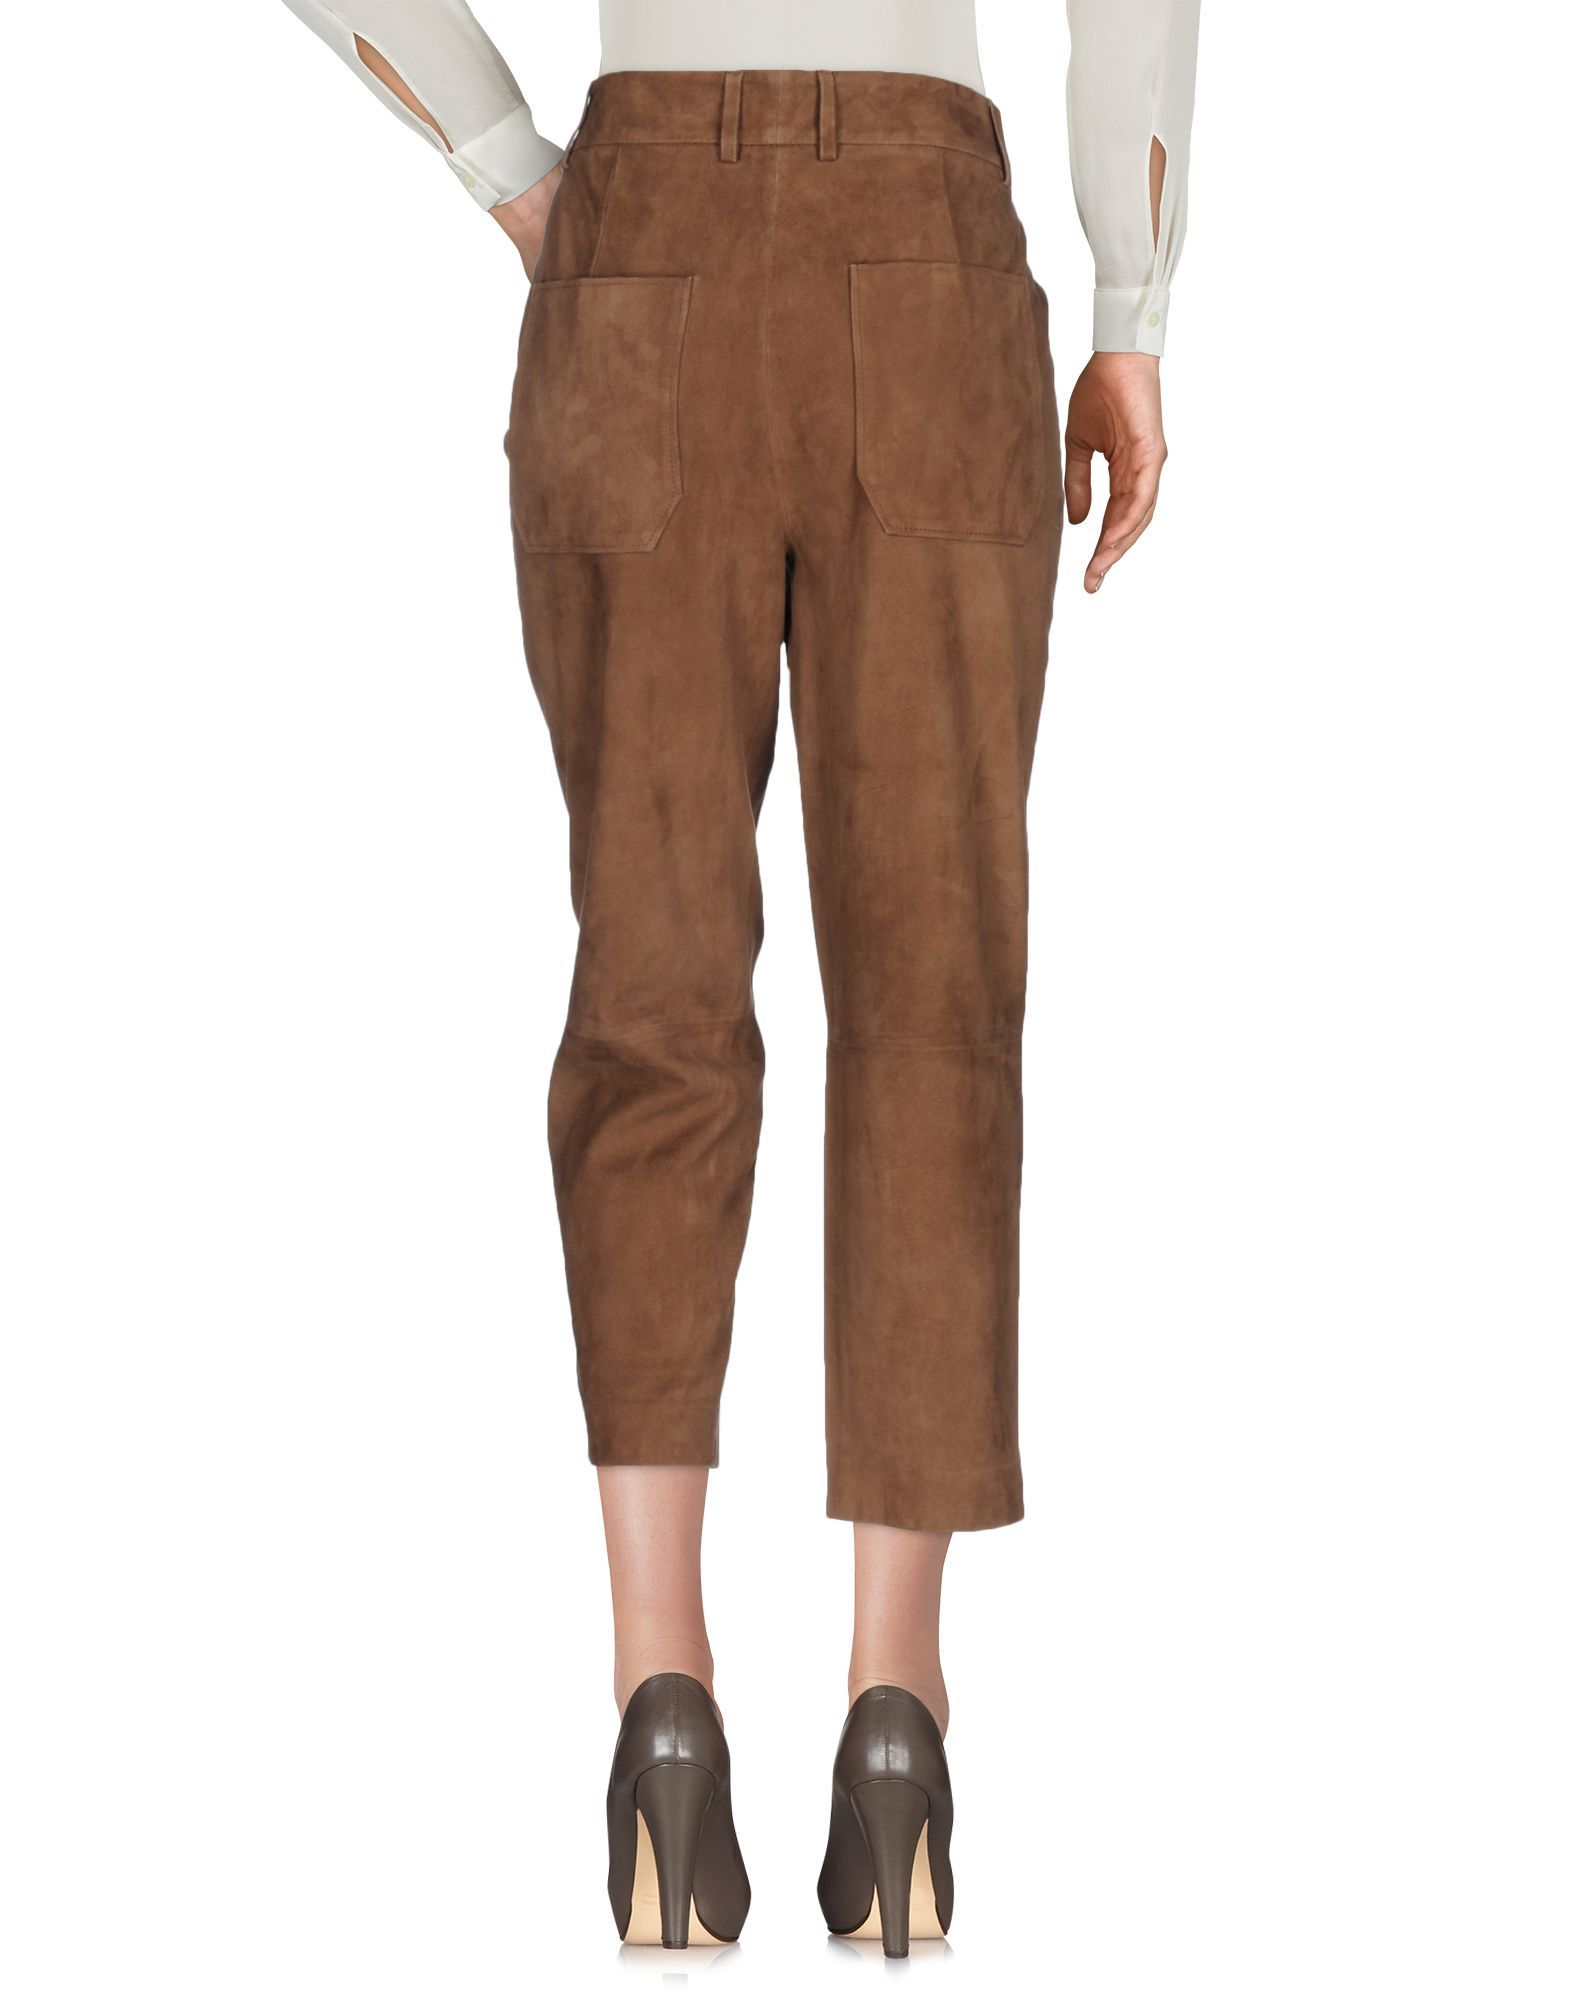 Trousers True Royal Brown Women's Leather